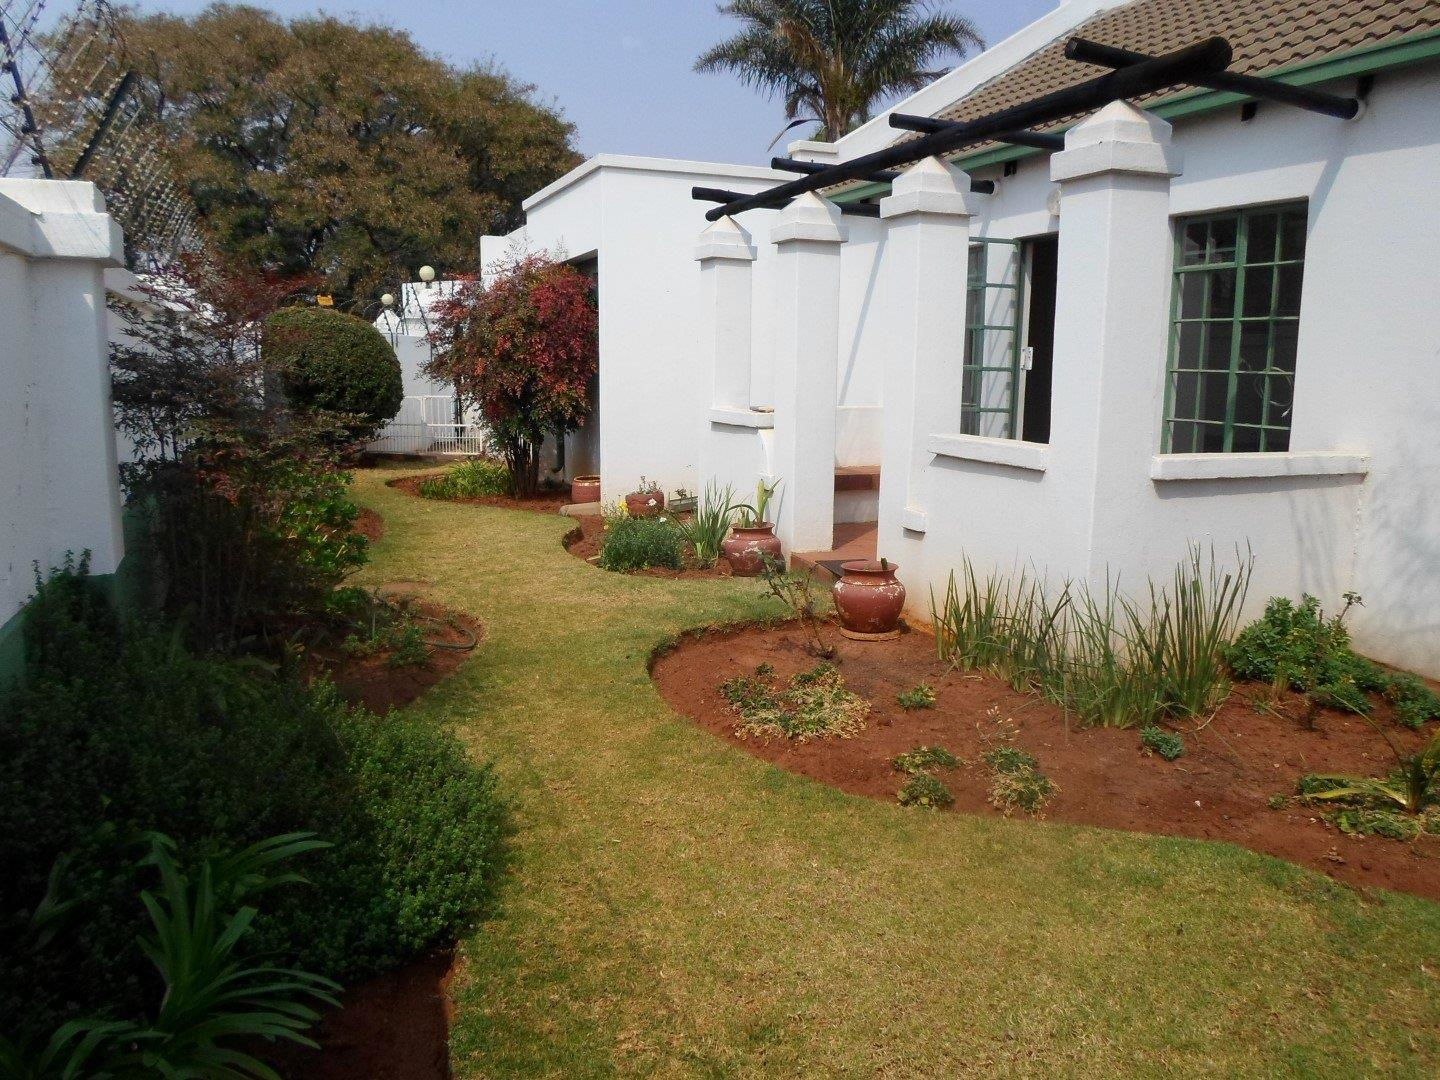 2 Bedroom Townhouse in Die Hoewes, Centurion Rental Monthly for R 9,950  #1840098